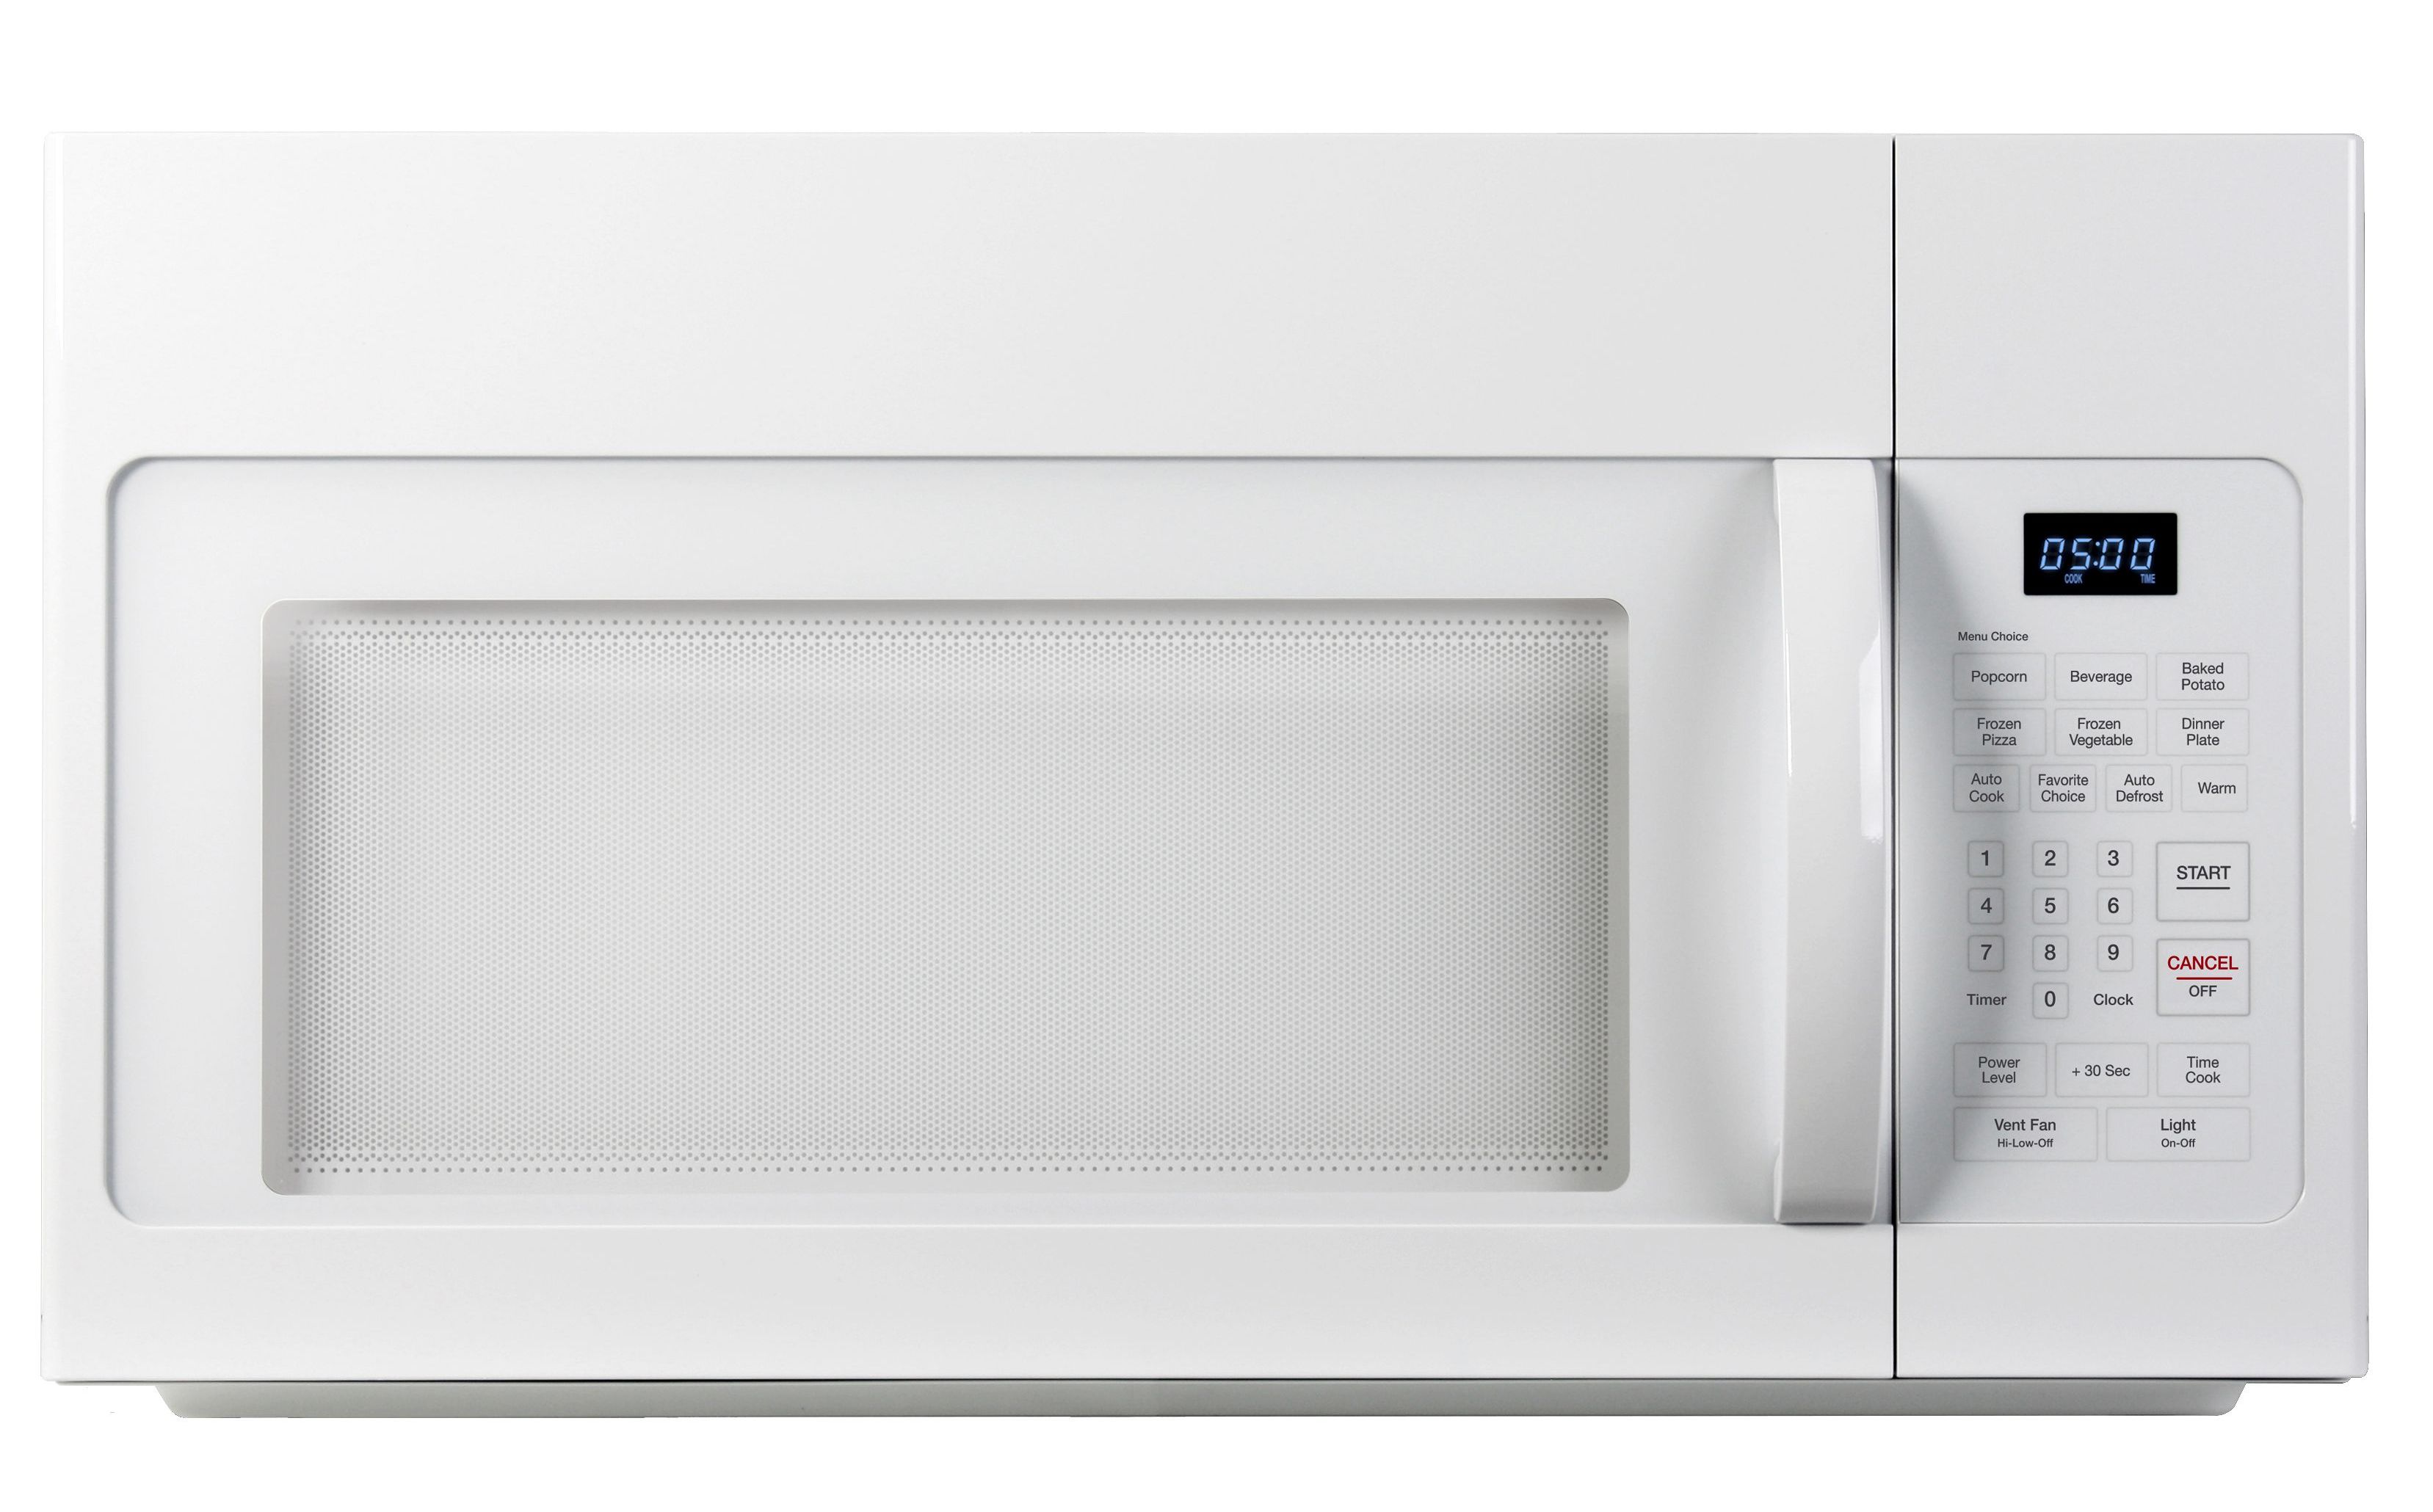 sears 83502 1 6 cu ft over the range